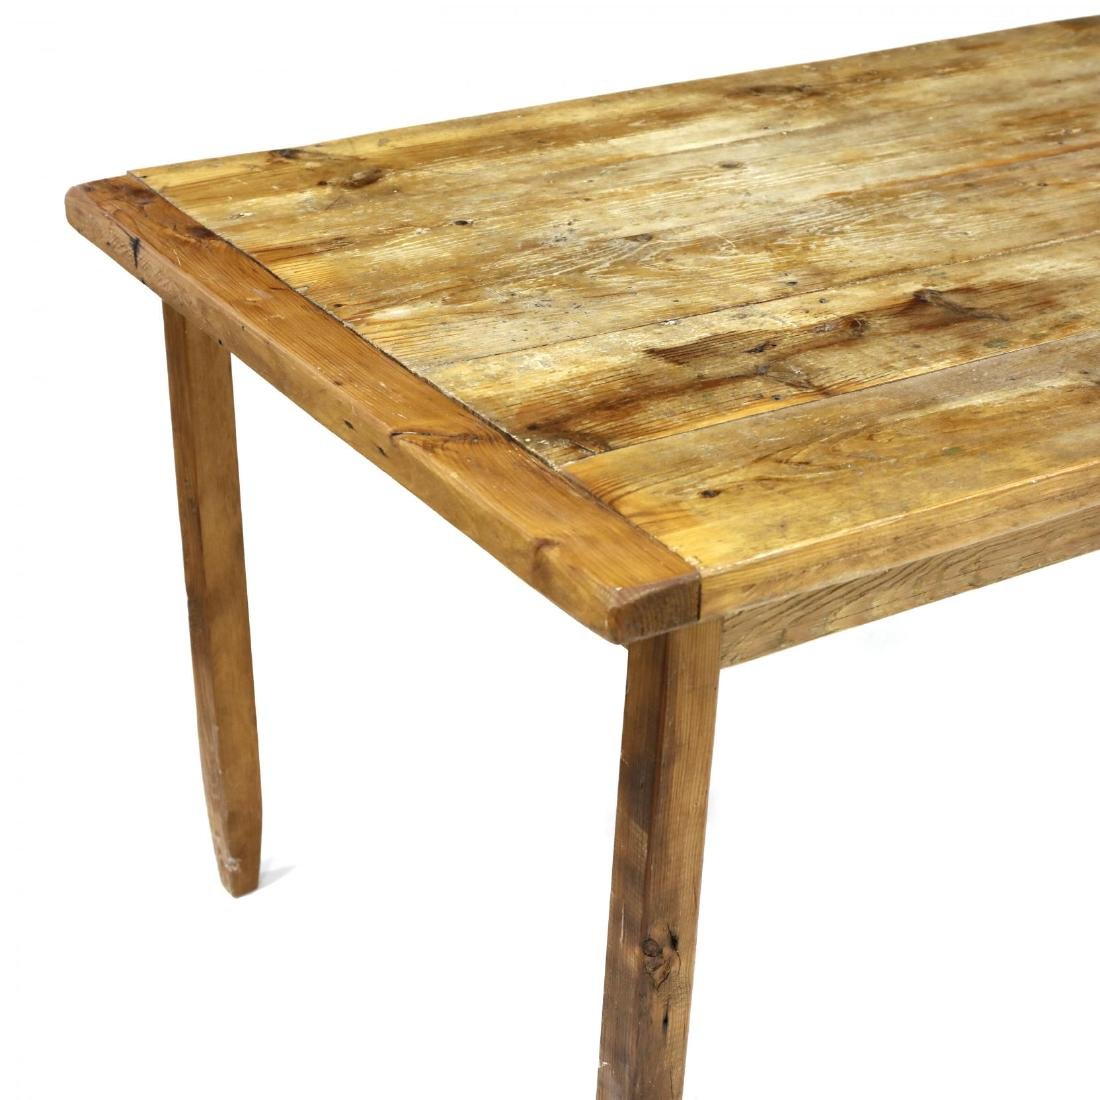 Vintage Pine Harvest Table - 2